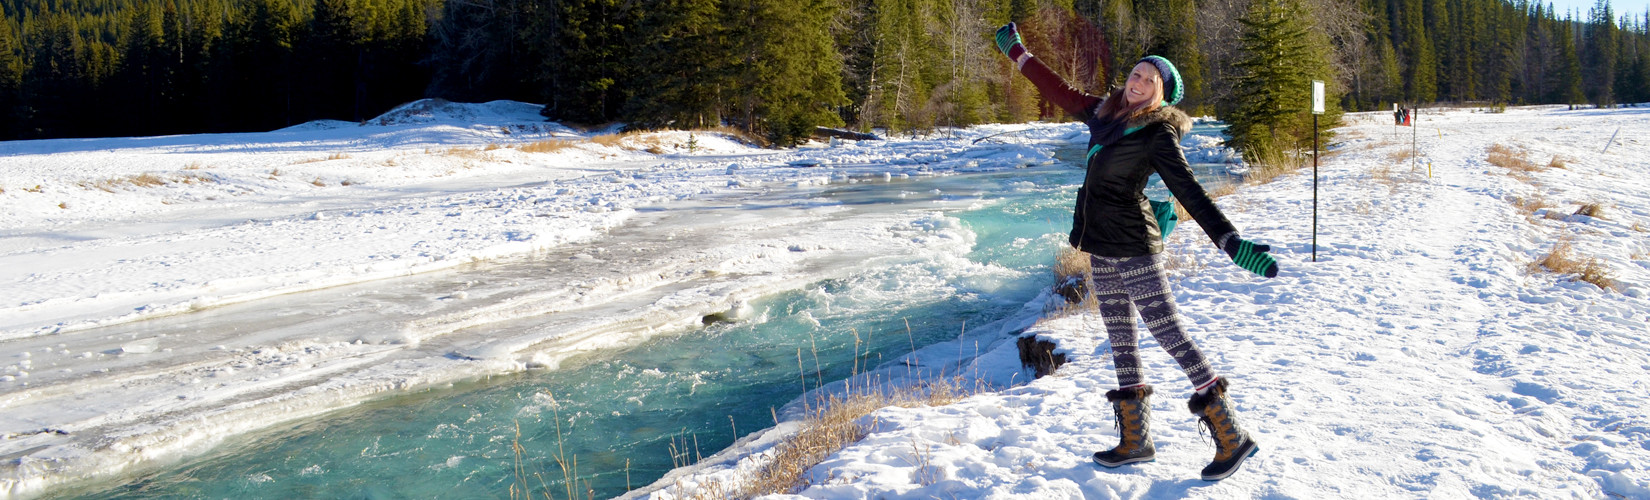 Winter Activities in Canada that Will Have You Embracing the Season :: I've Been Bit! Travel Blog